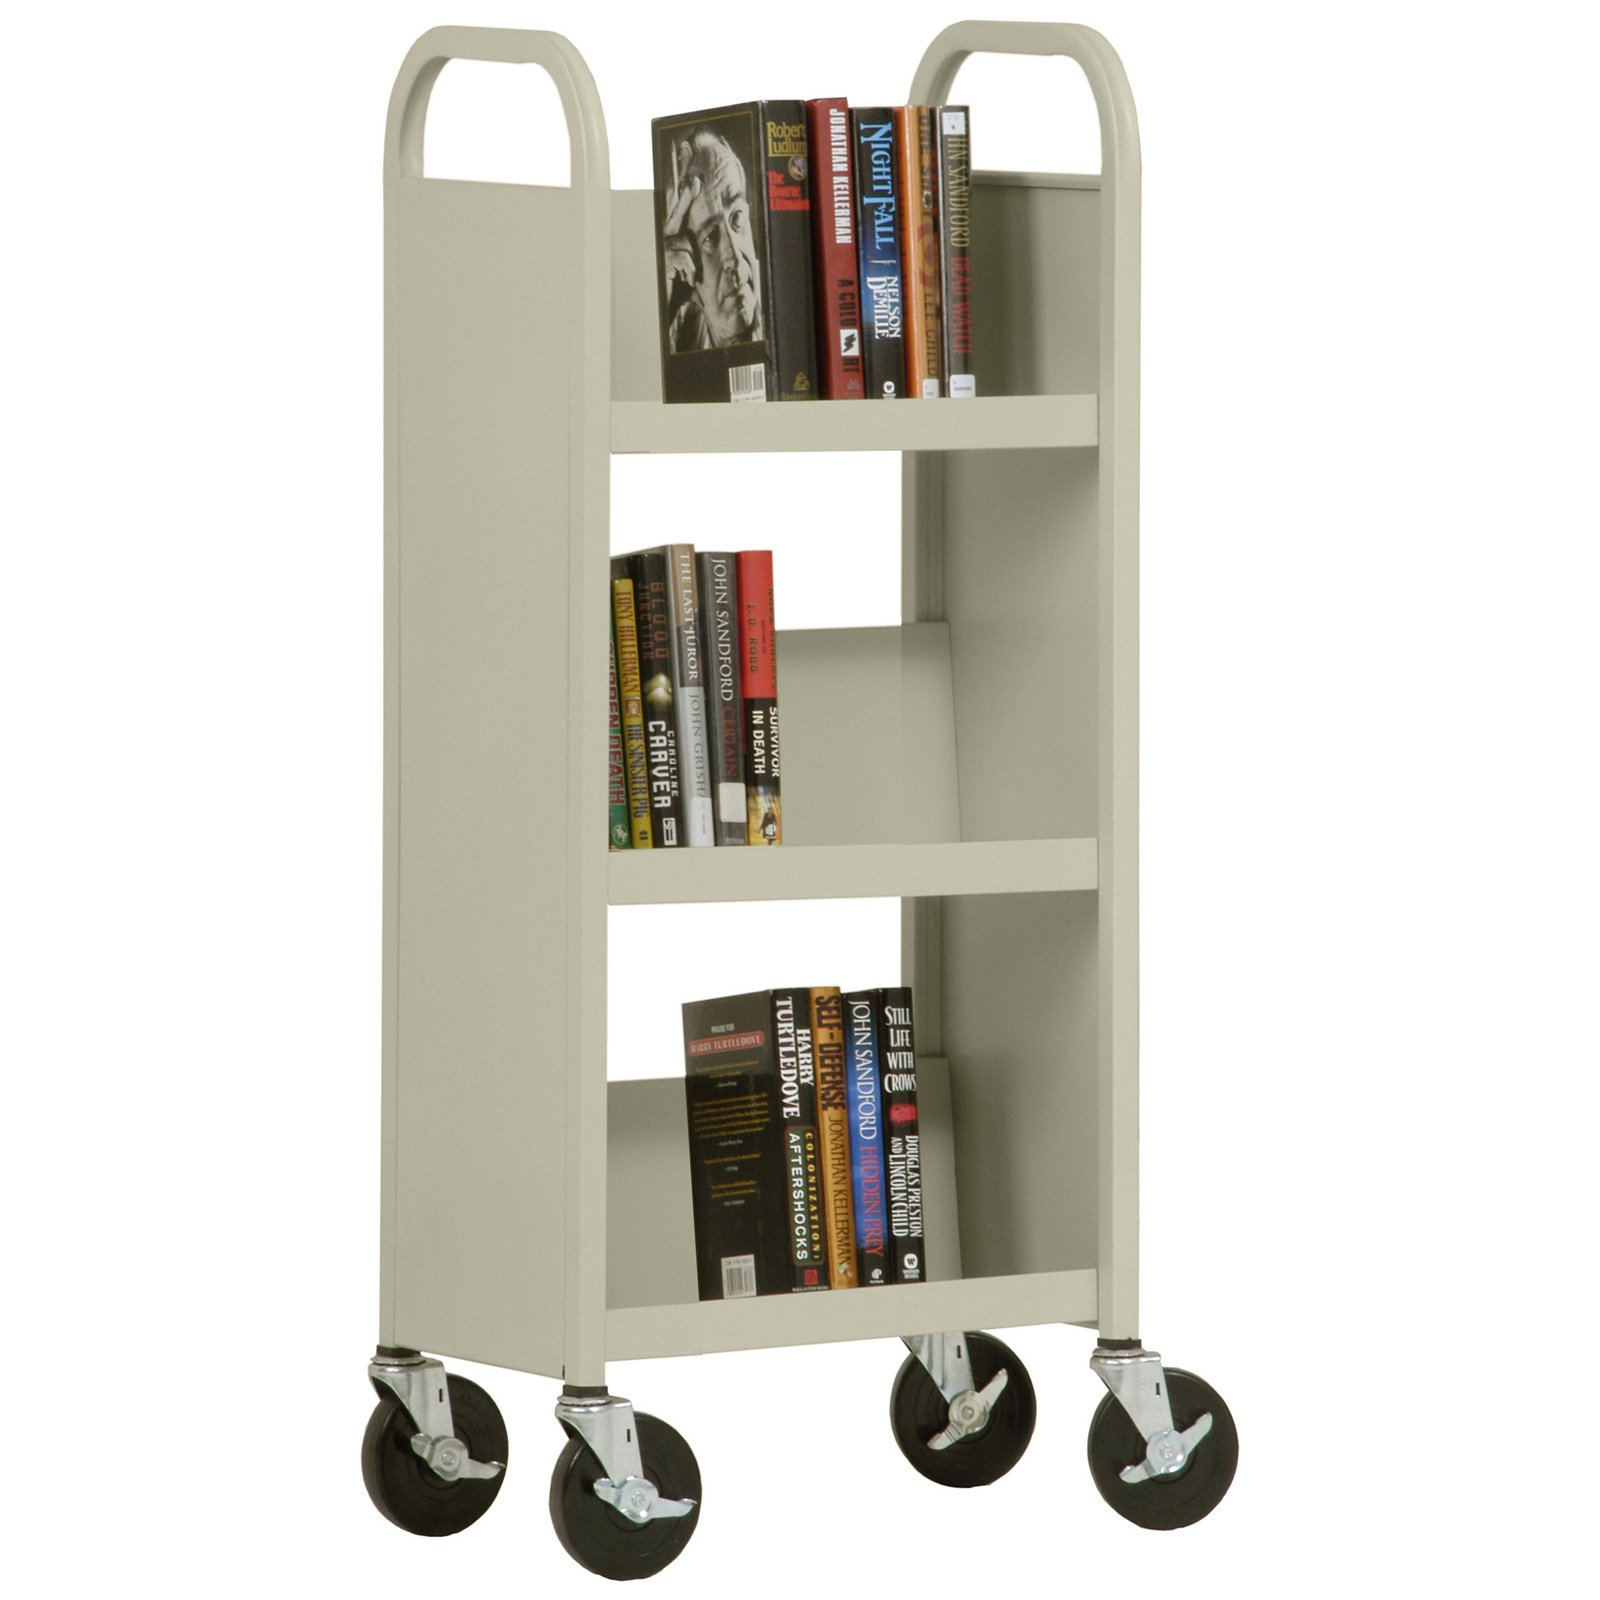 Sandusky Lee Sloped Shelf 3-Tier Mobile Bookcase